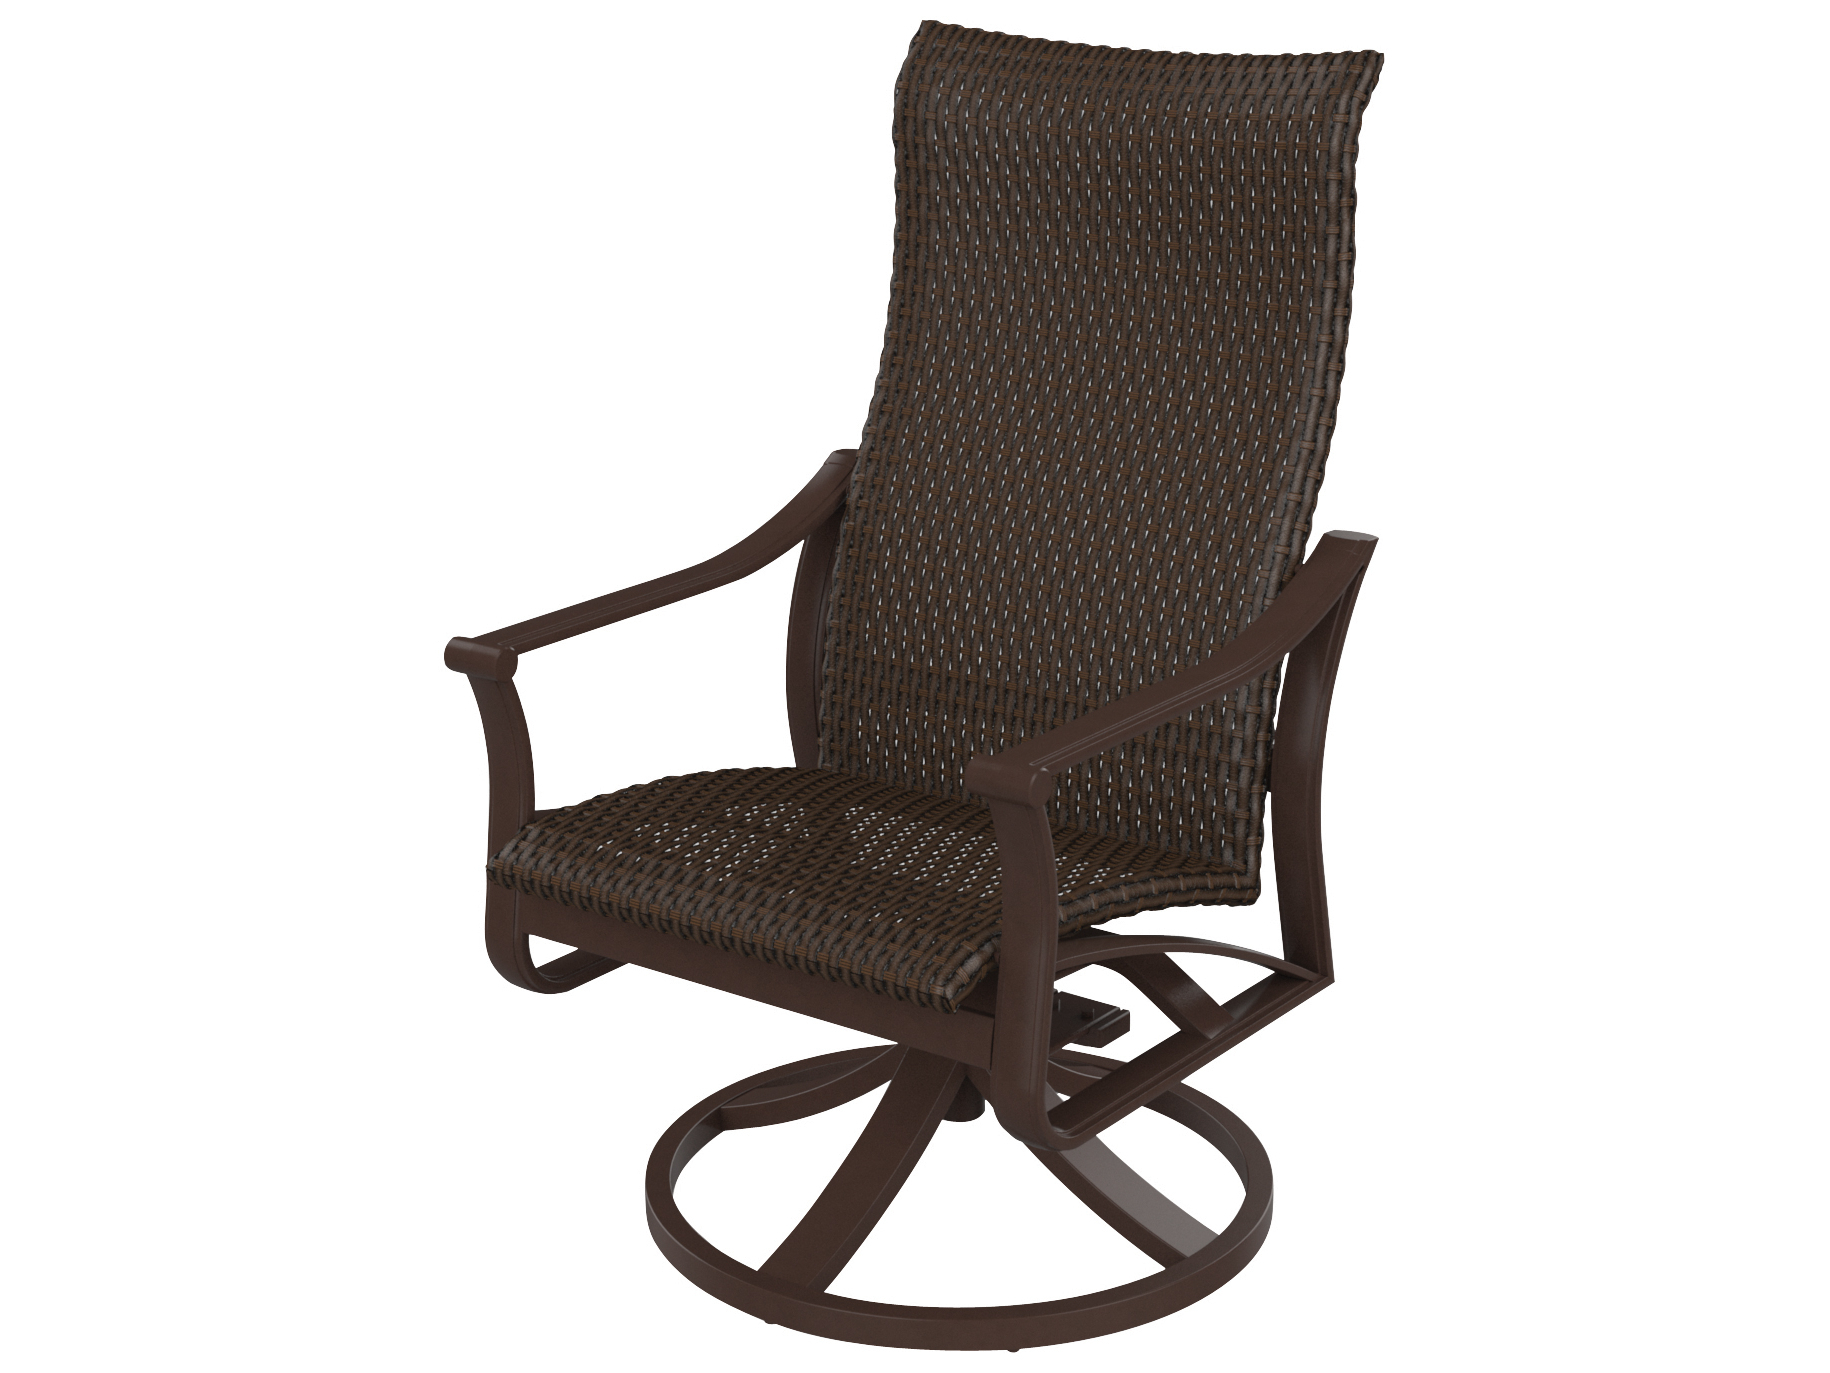 Trendy Tropitone Corsica Woven High Back Swivel Rocker Intended For Woven High Back Swivel Chairs (View 14 of 30)